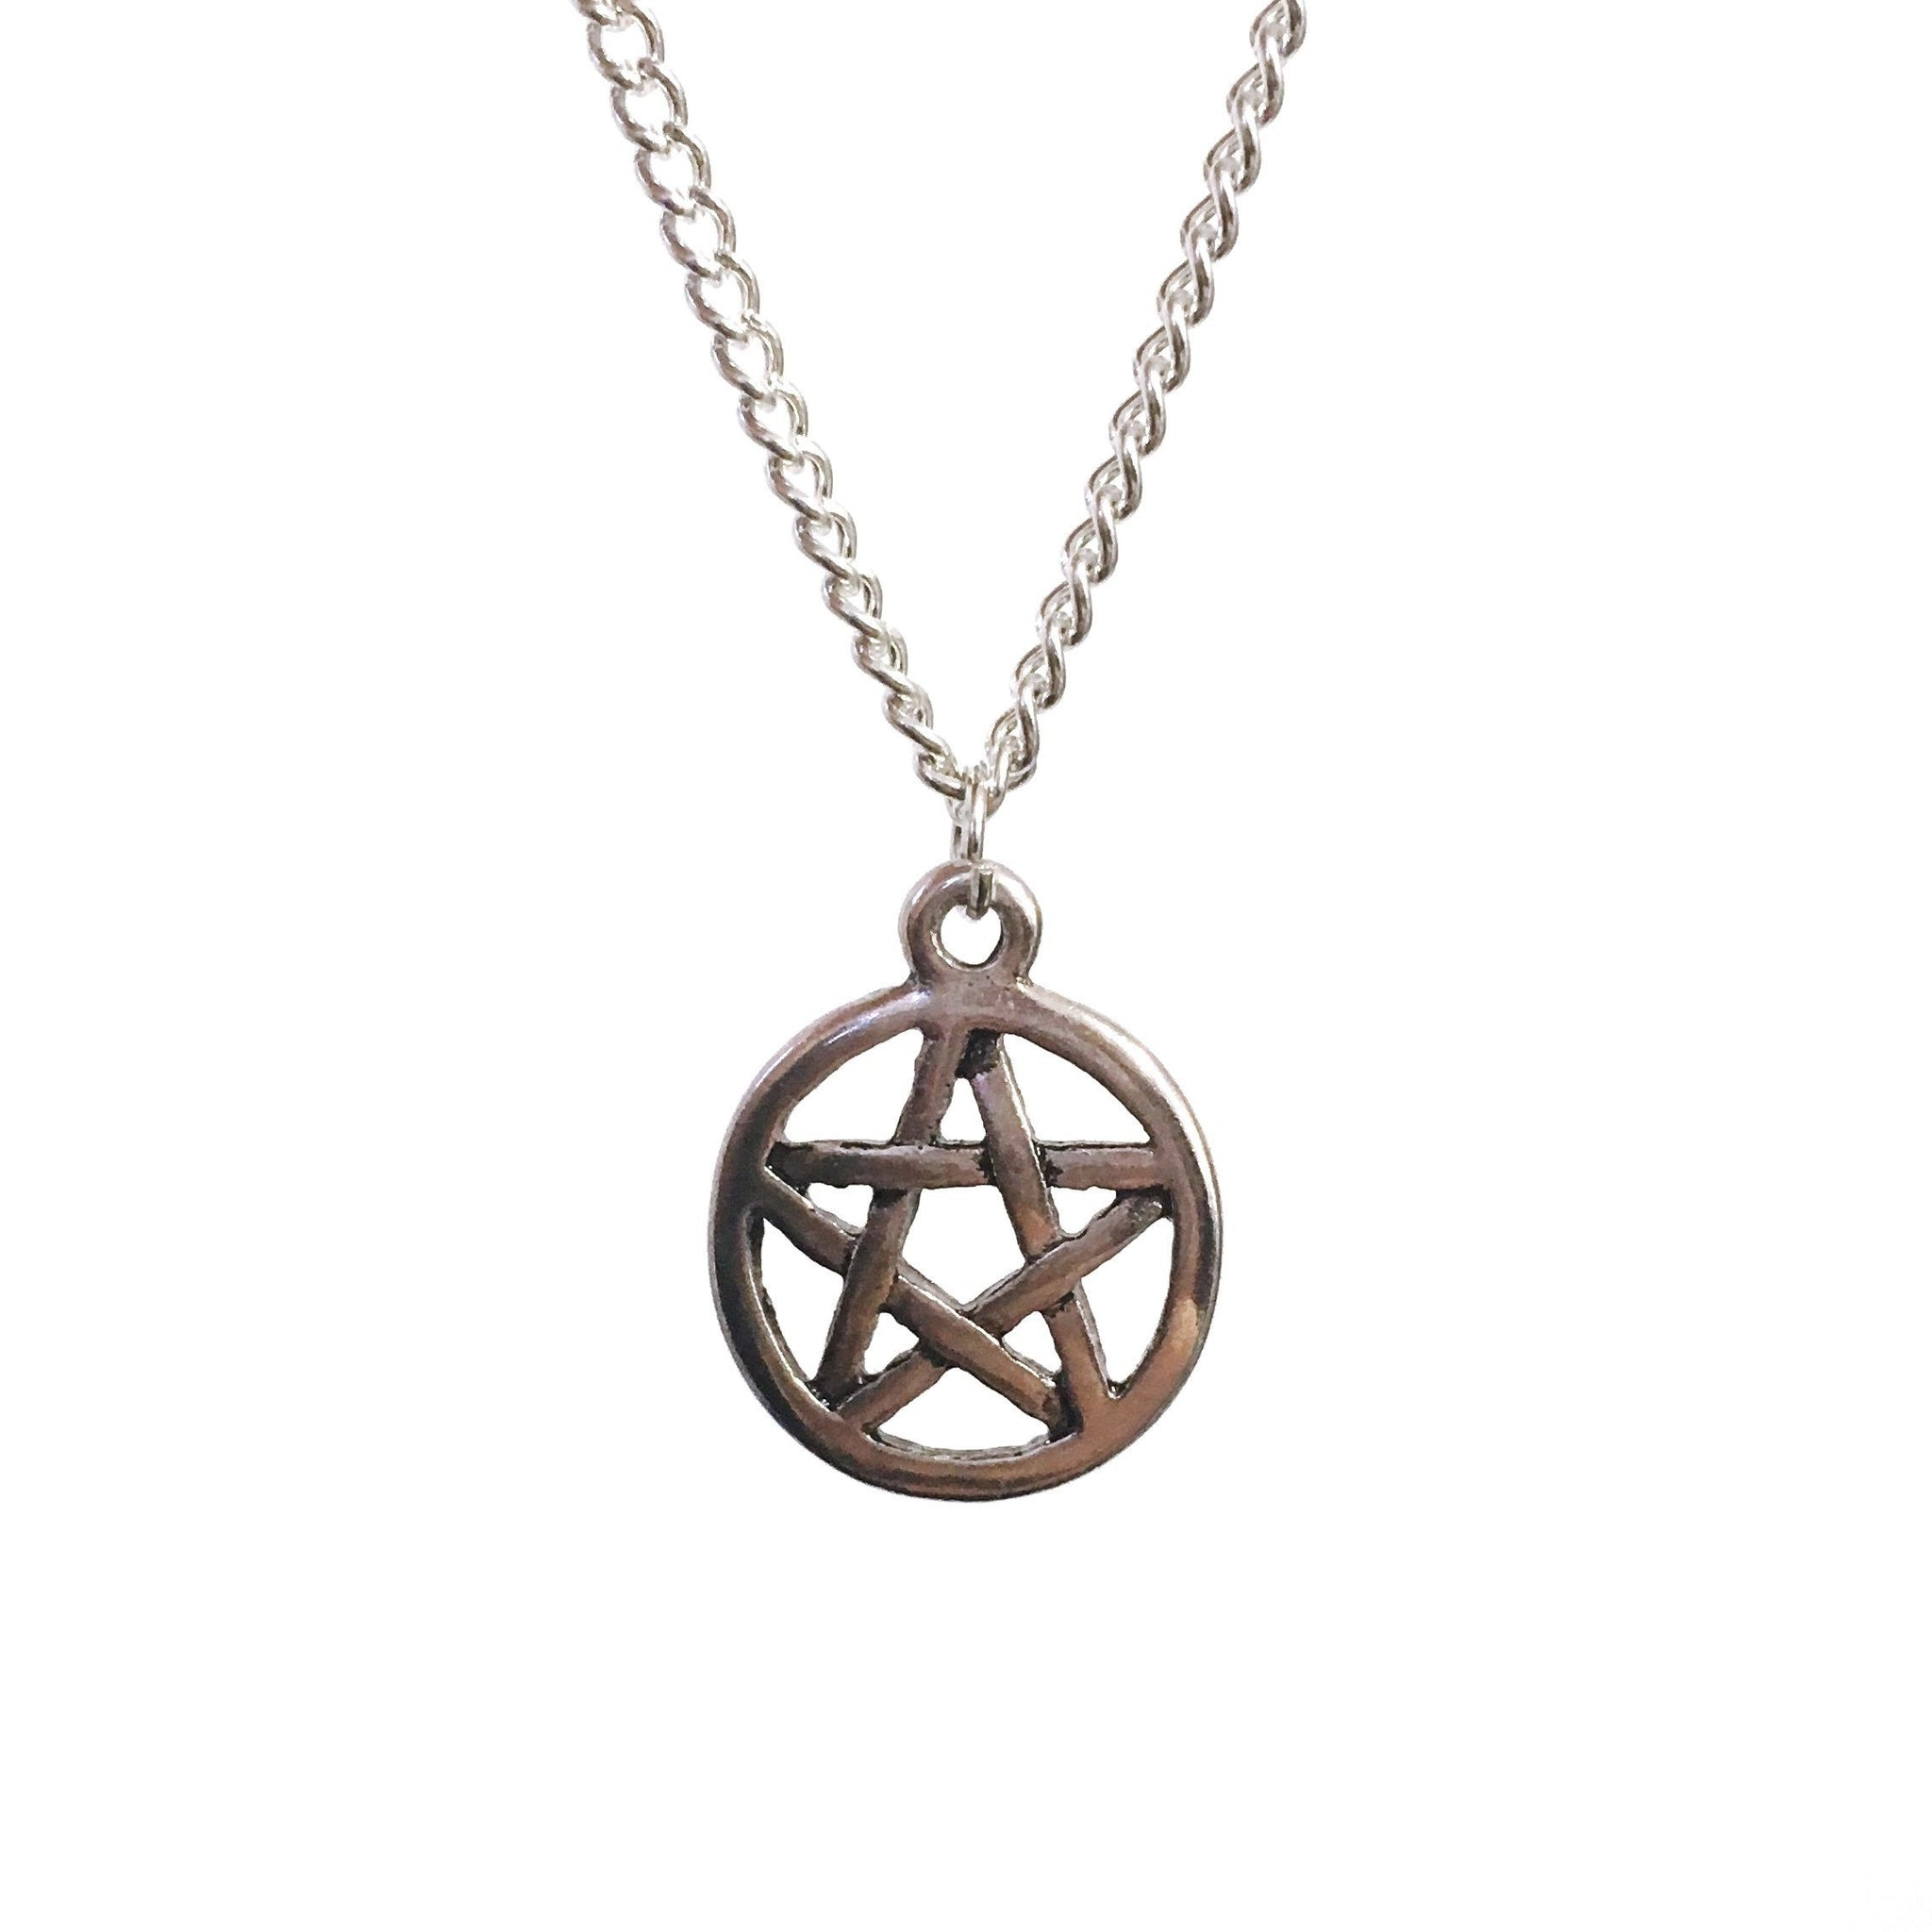 Silver Pentagram Pendant Necklace - Minimum Mouse